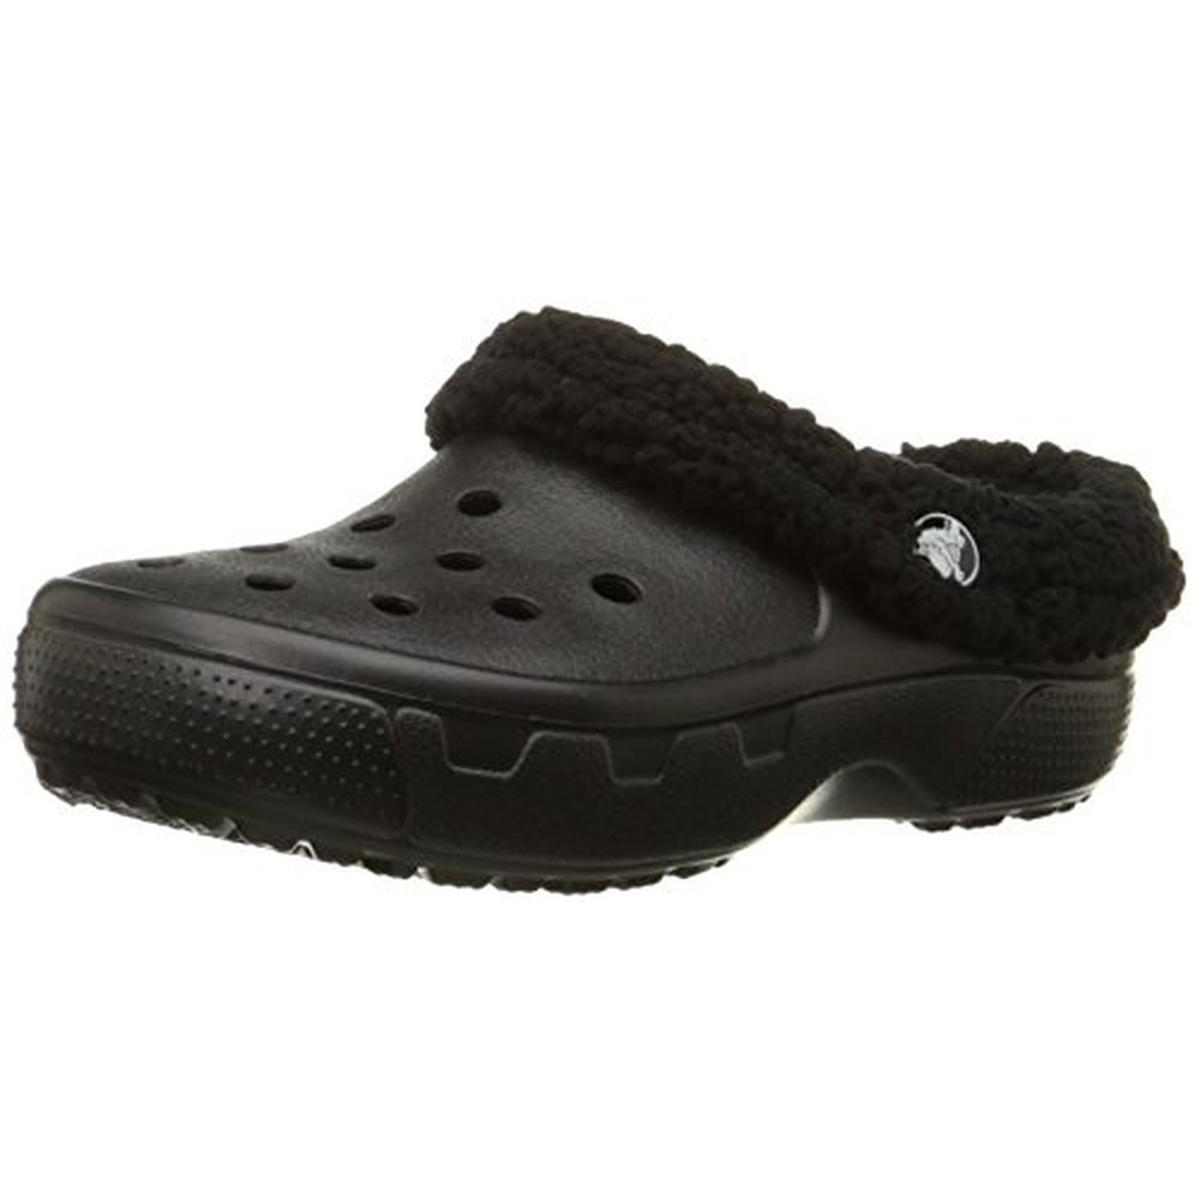 Crocs Boys Mammoth Faux Fur Clogs by Crocs